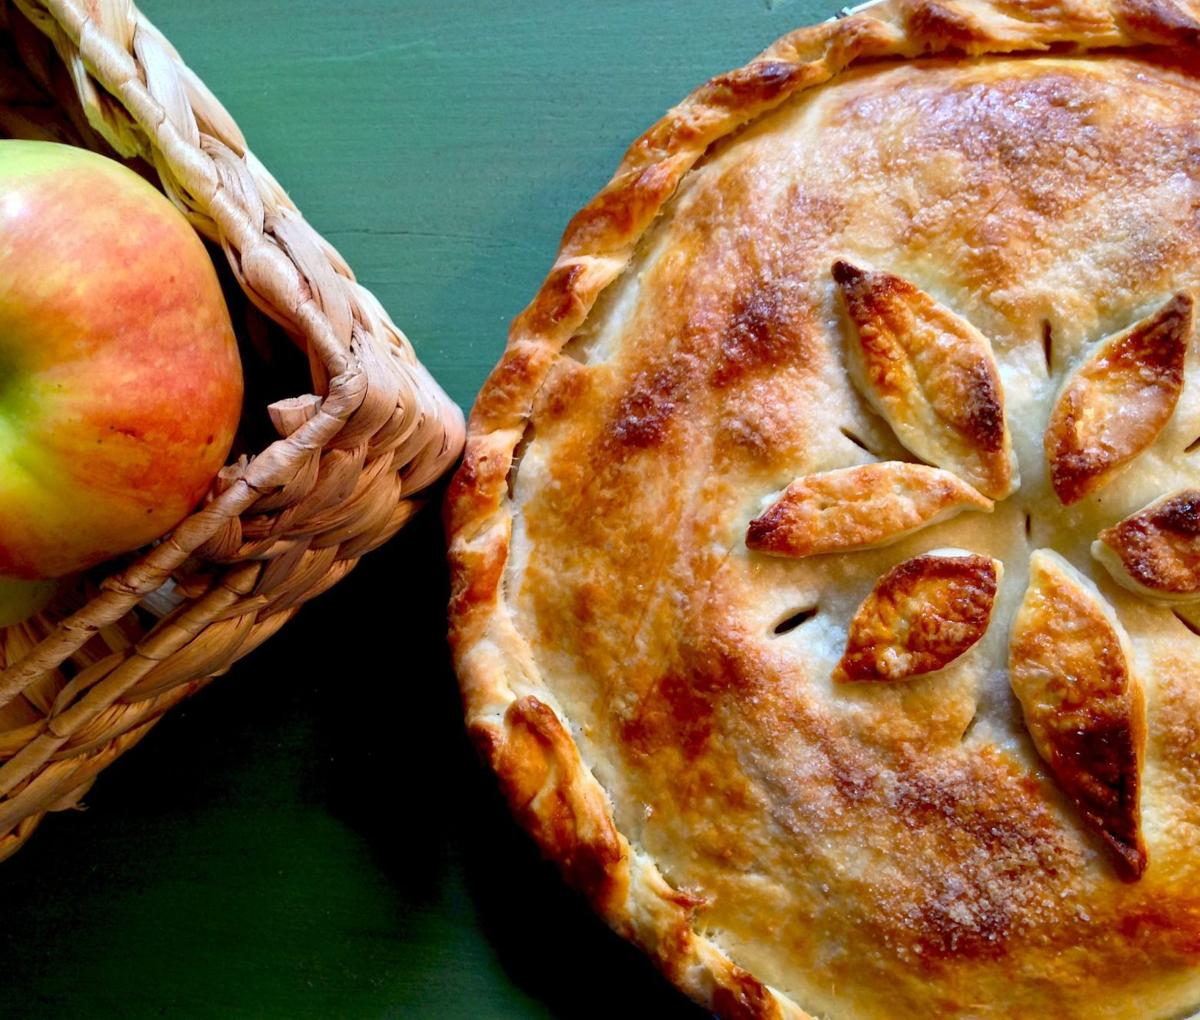 FRESH OFF THE FARM: Country Apple Galettes by Claire Nines